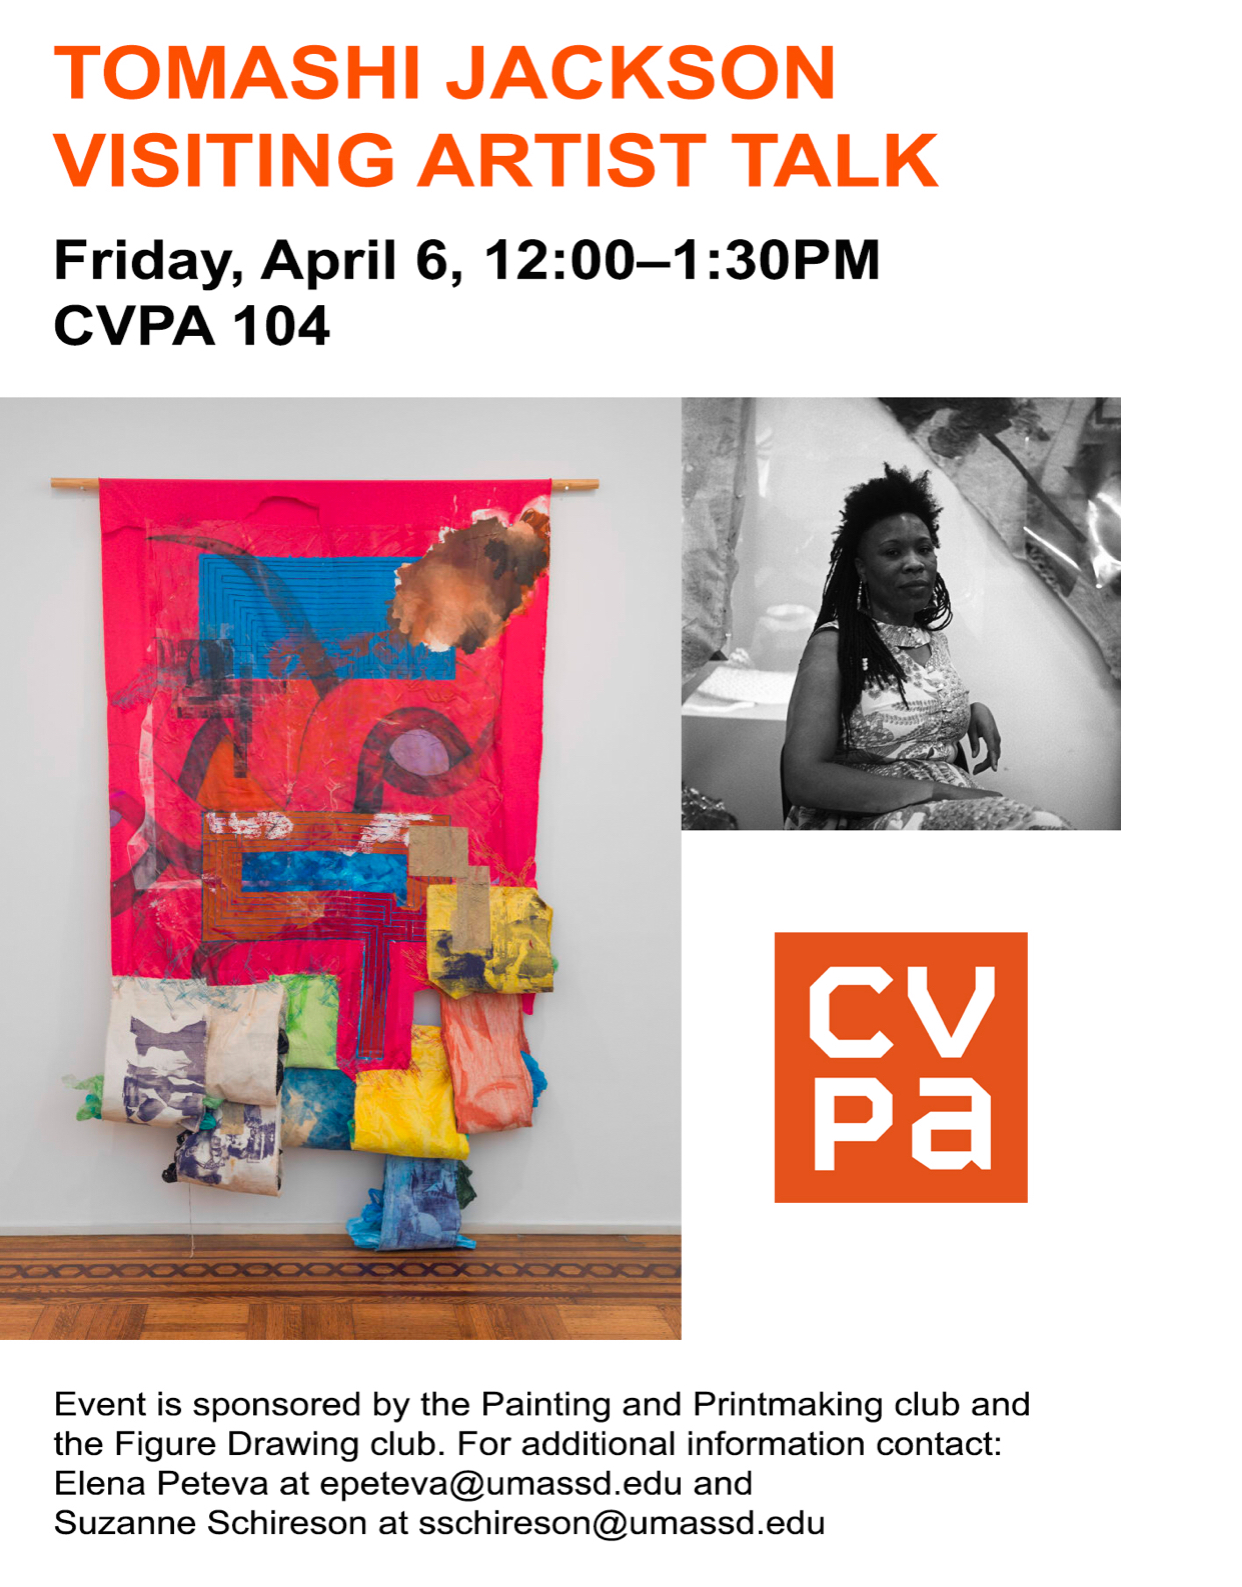 This Friday! Tomashi Jackson will join us, thanks to the Painting and Printmaking club and the Figure Drawing club for sponsoring!